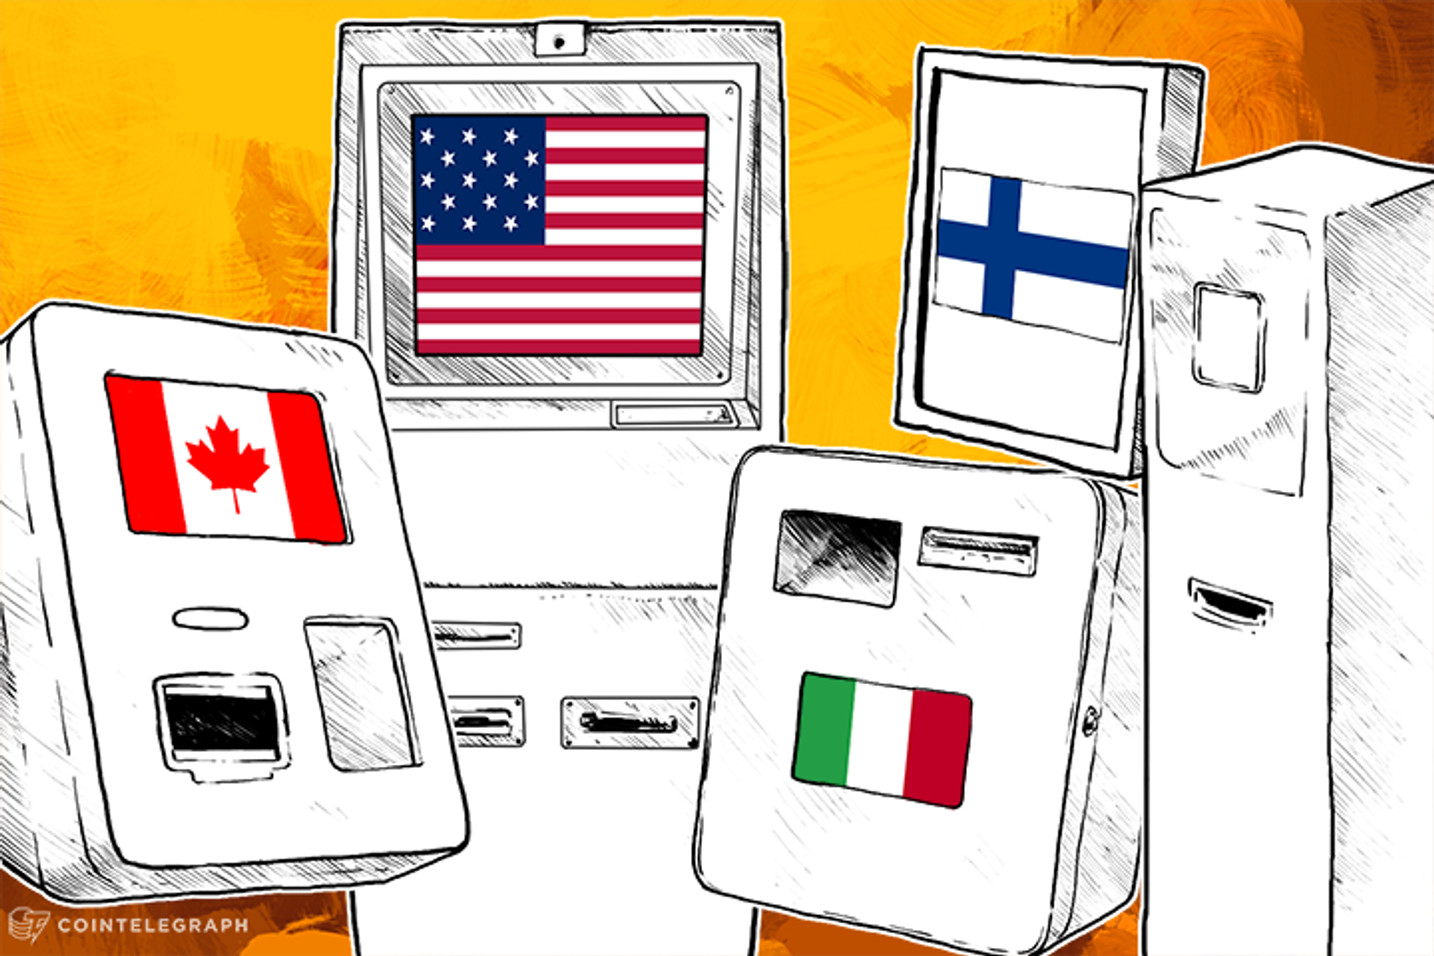 New BTMs: 10 Machines Go Live Across North America and Europe